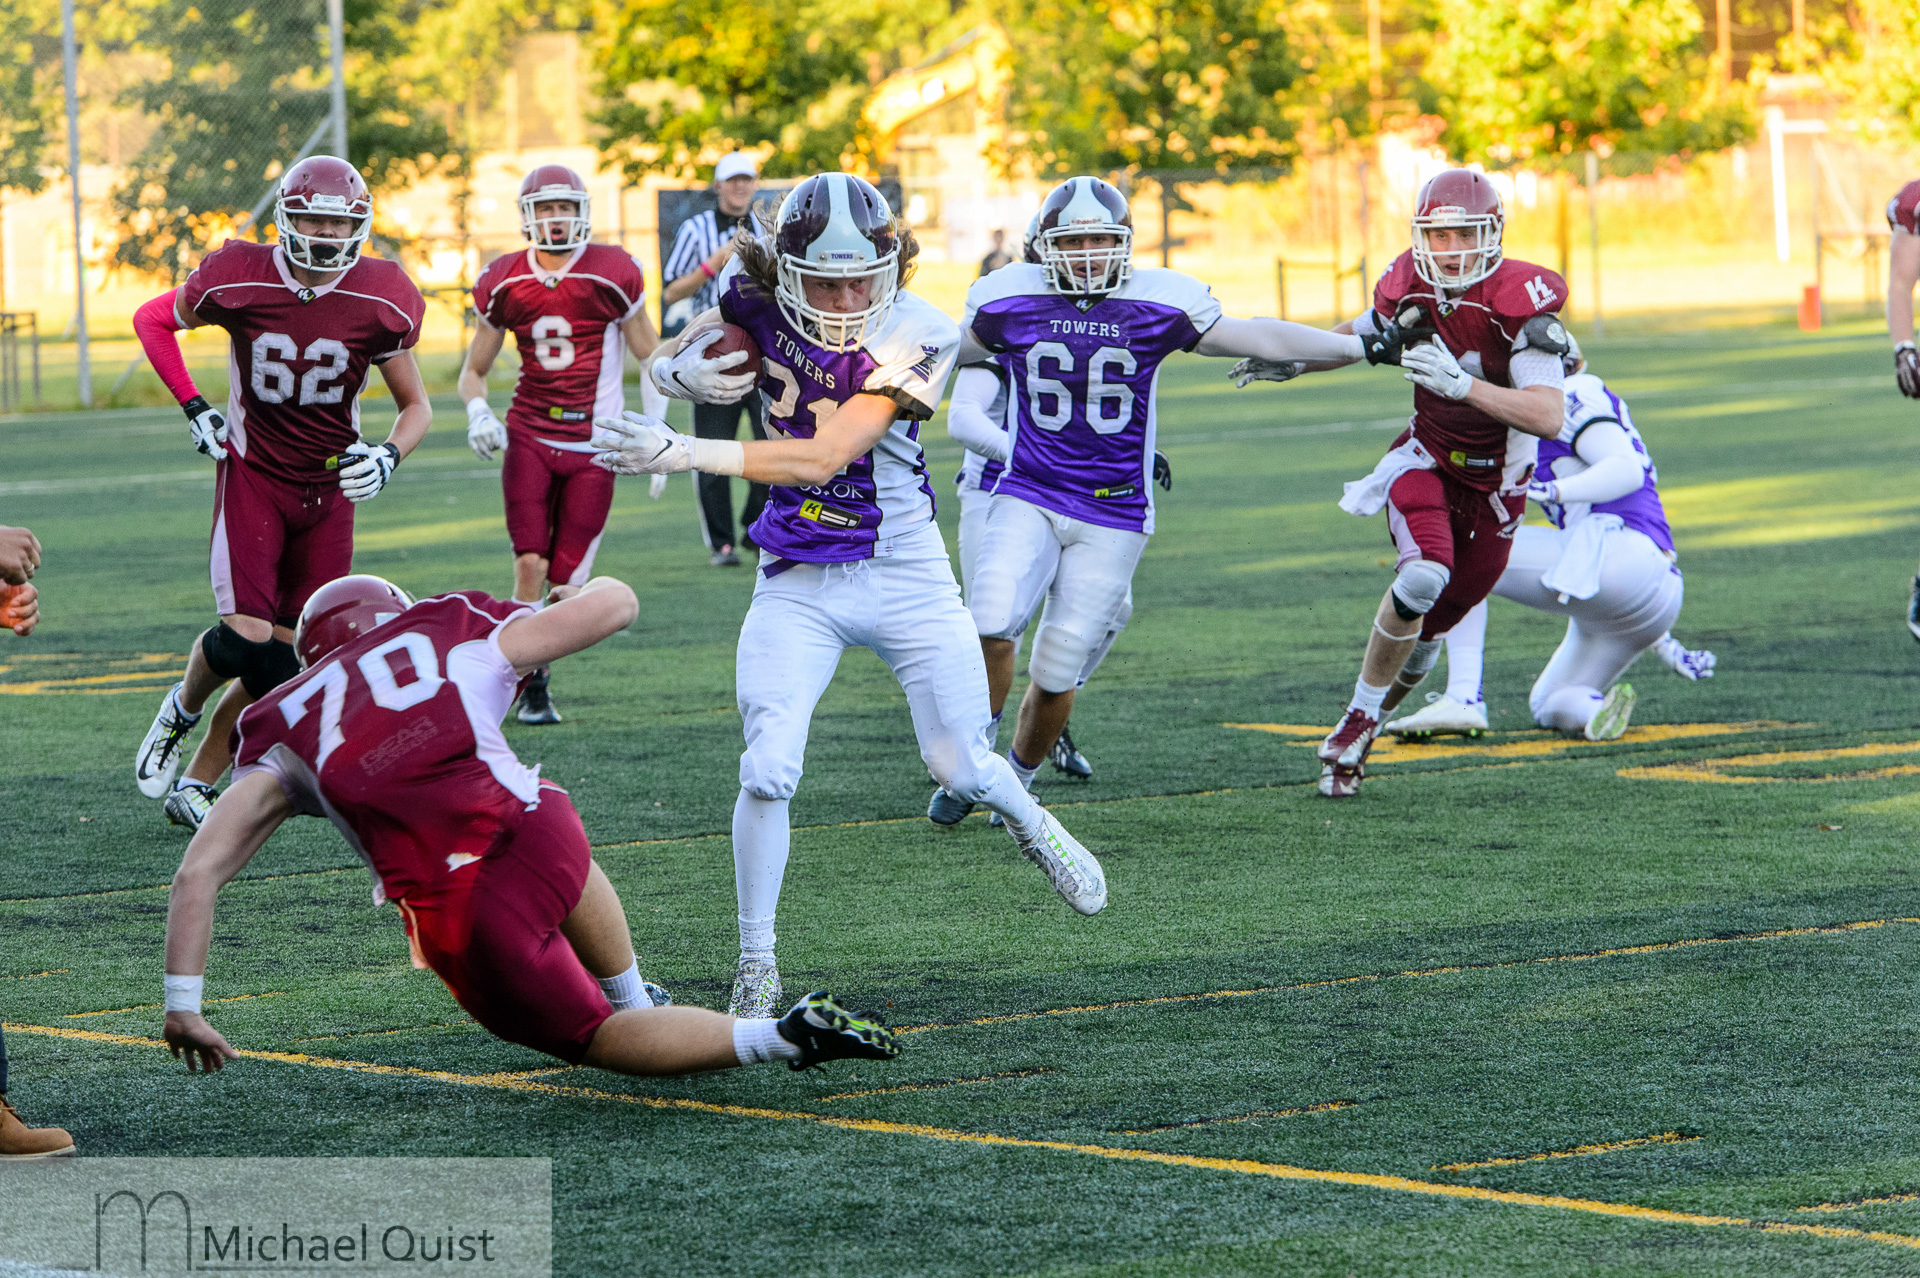 Junior-Bowl-2015-Copenhagen-Towers-vs-Herlev-Rebels-54